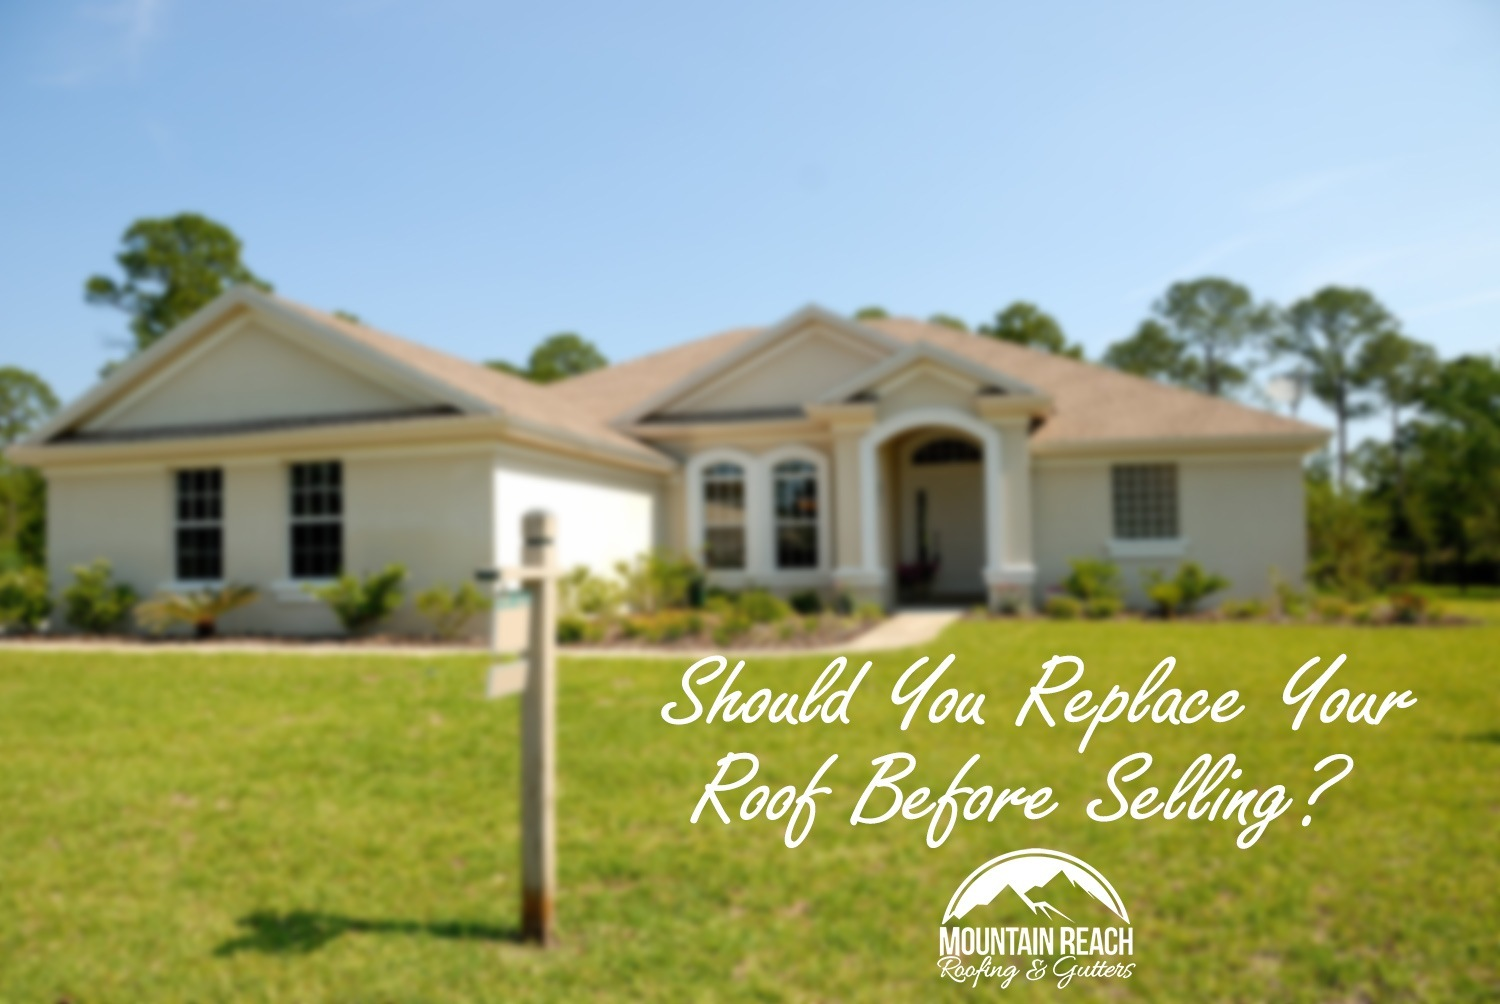 Should You Replace Your Roof Before Selling?